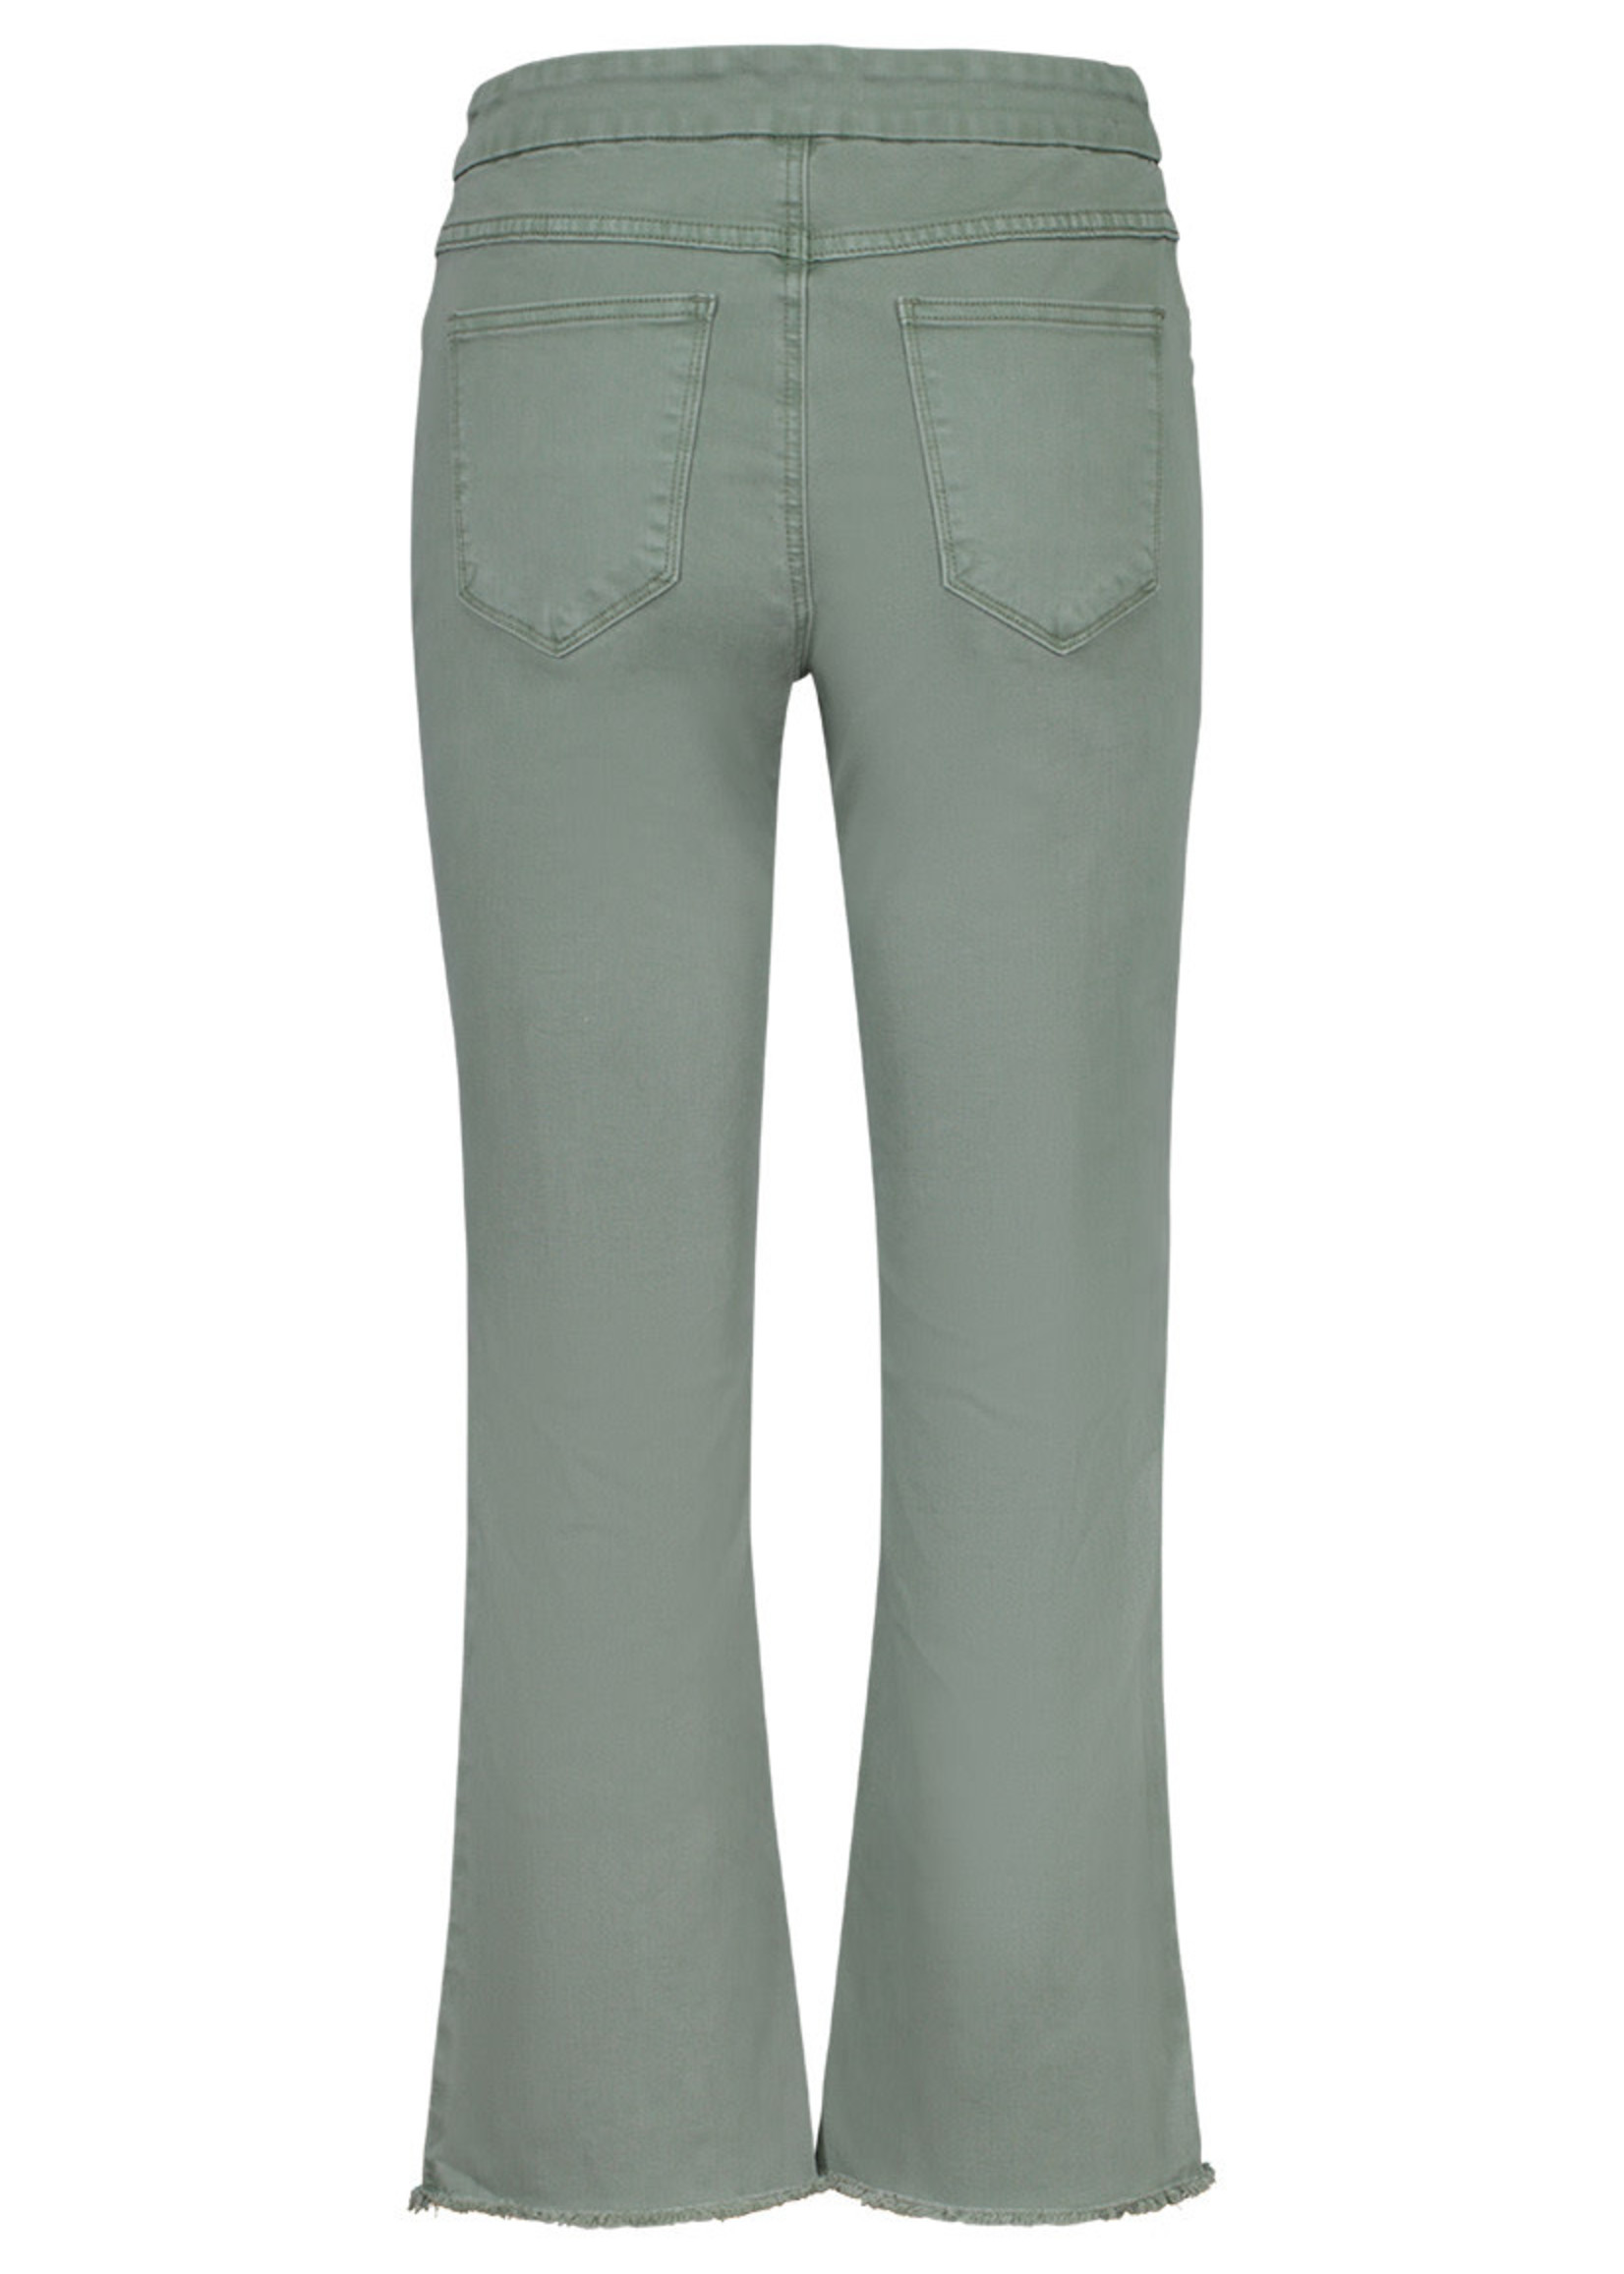 Tribal Tribal Audrey Jeans Pull On Straight Crop